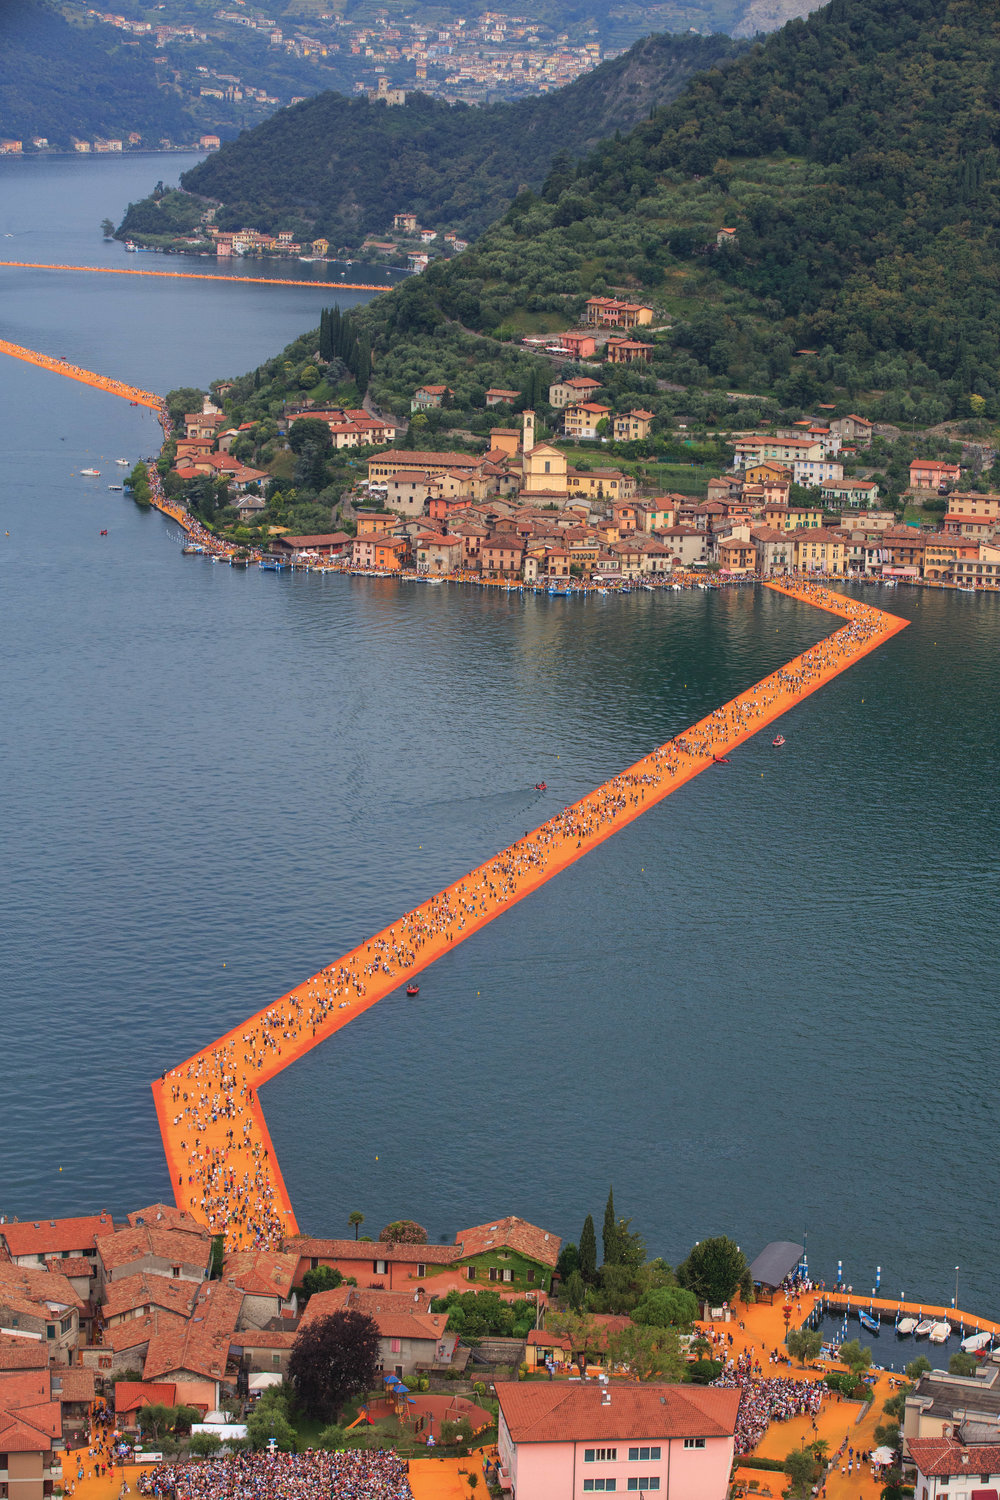 CHRISTO-FLOATINGPIERS-2016©LAMB-1372.jpg